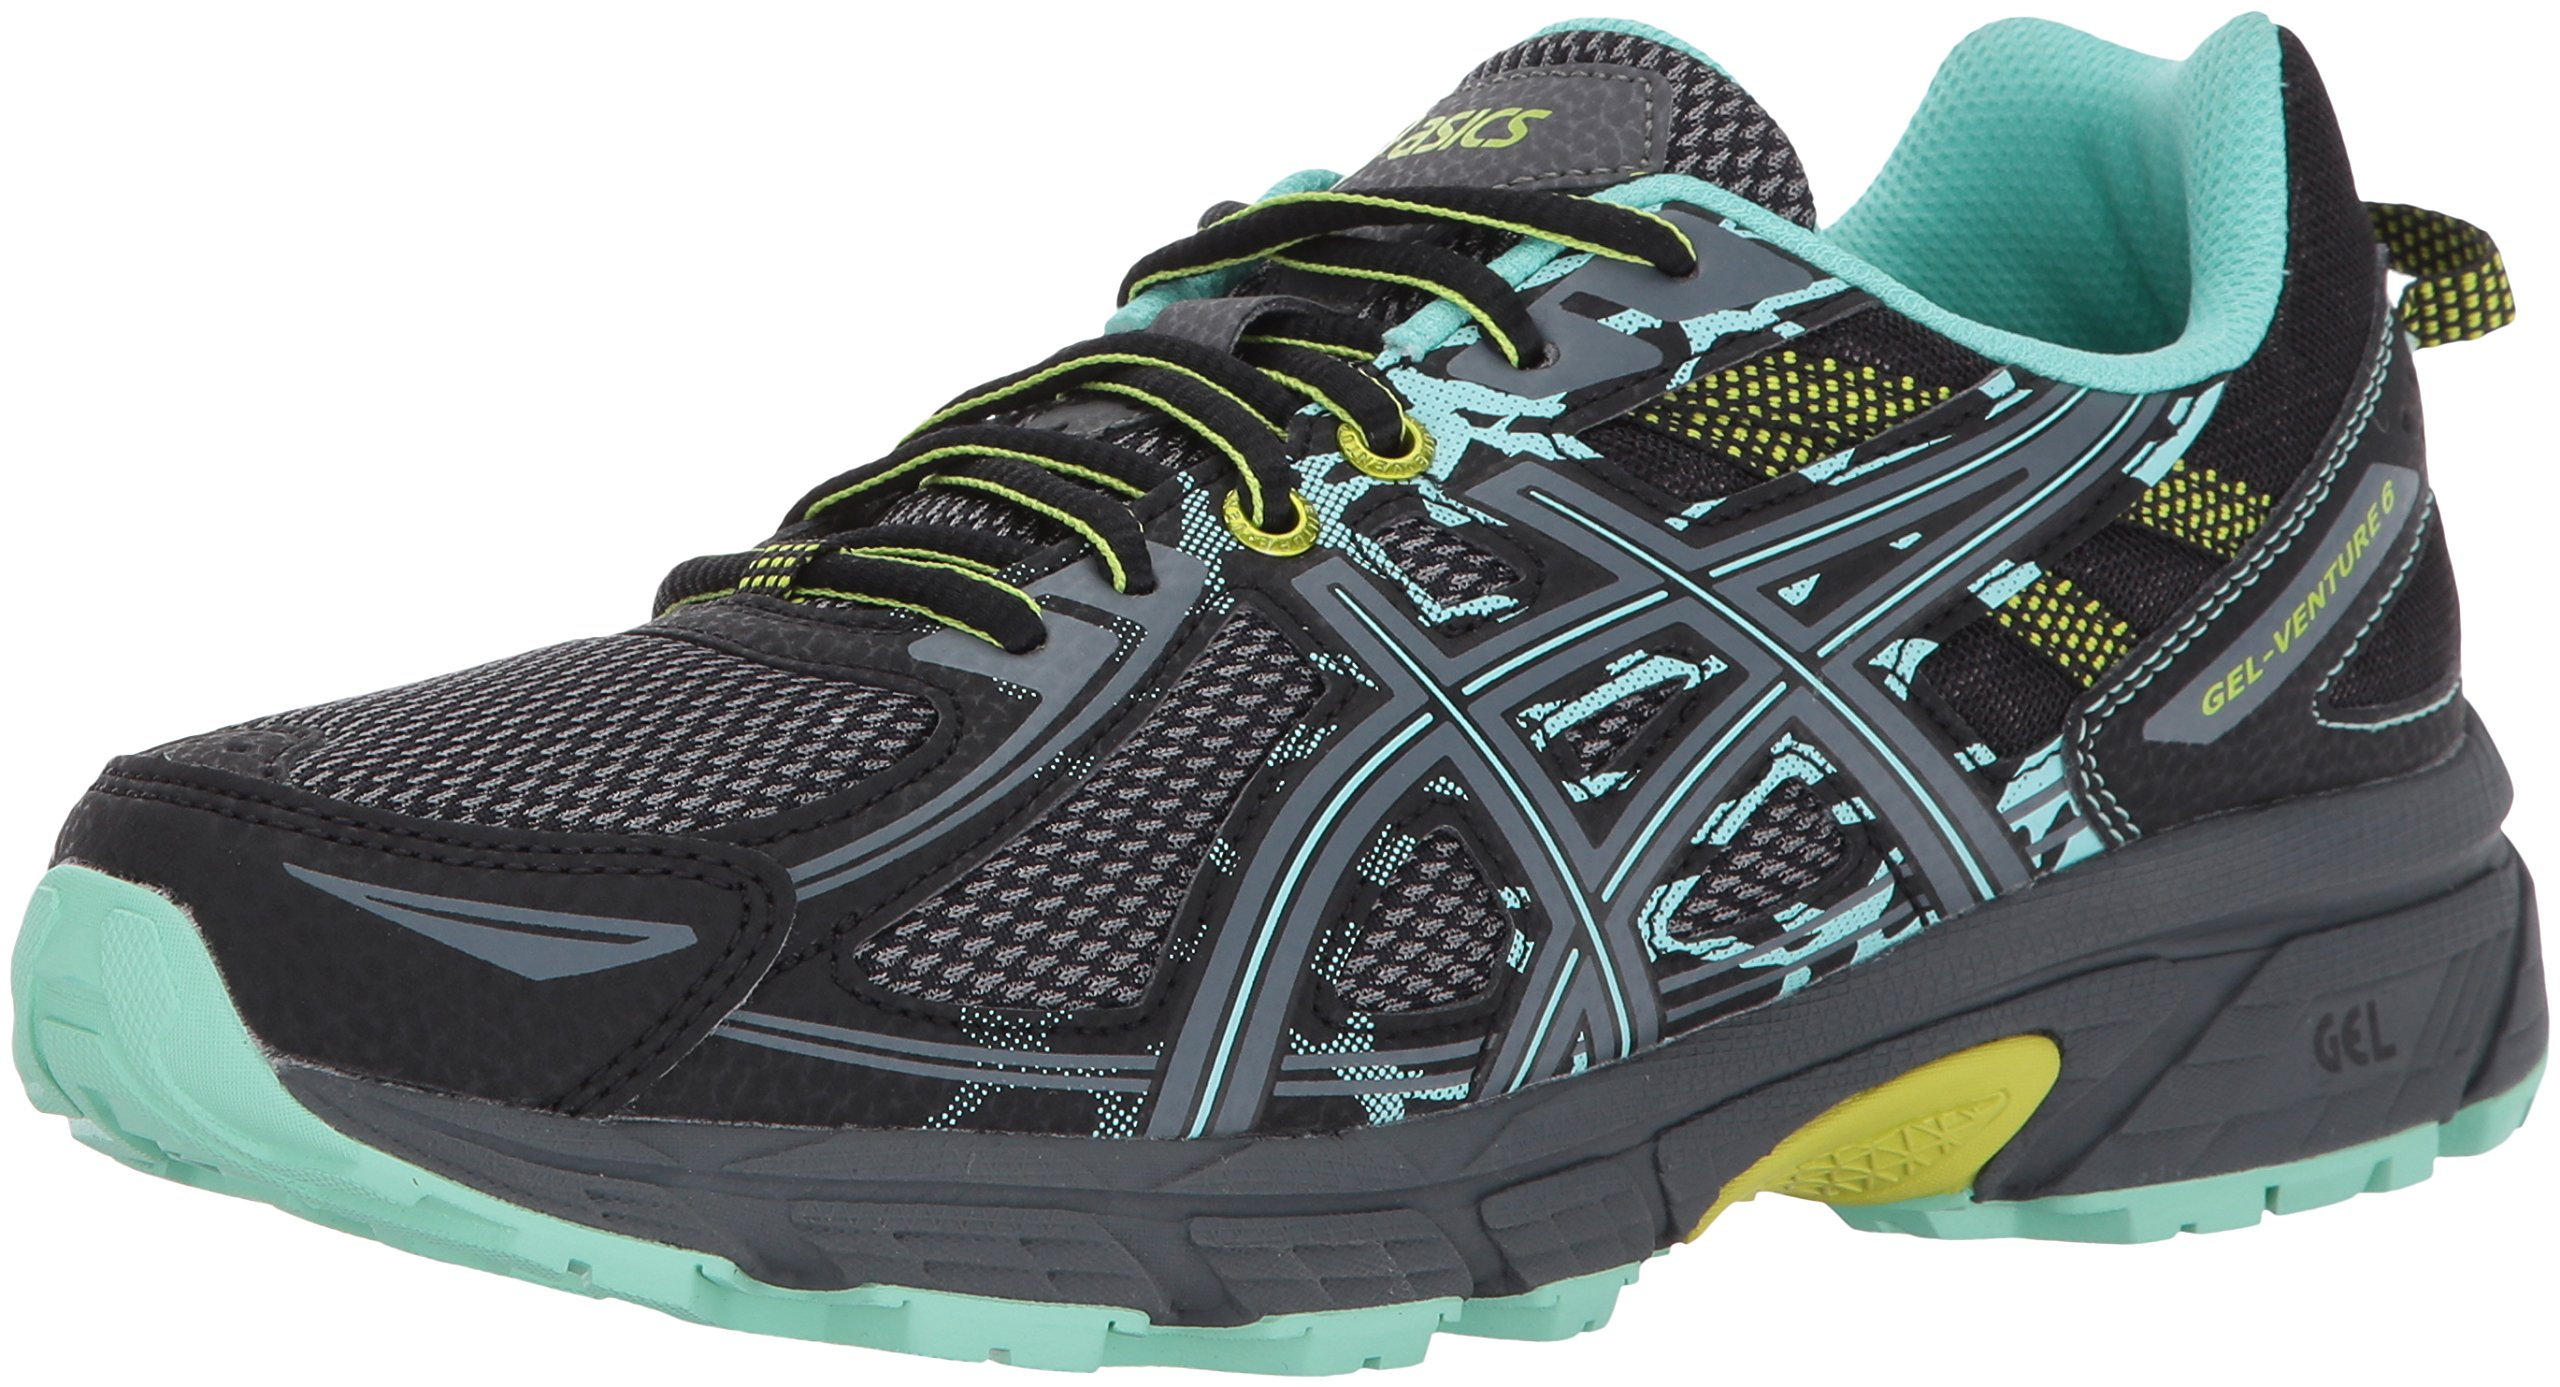 ASICS Women's Gel-Venture 6 Running-Shoes,Black/Carbon/Neon Lime,5 Medium US